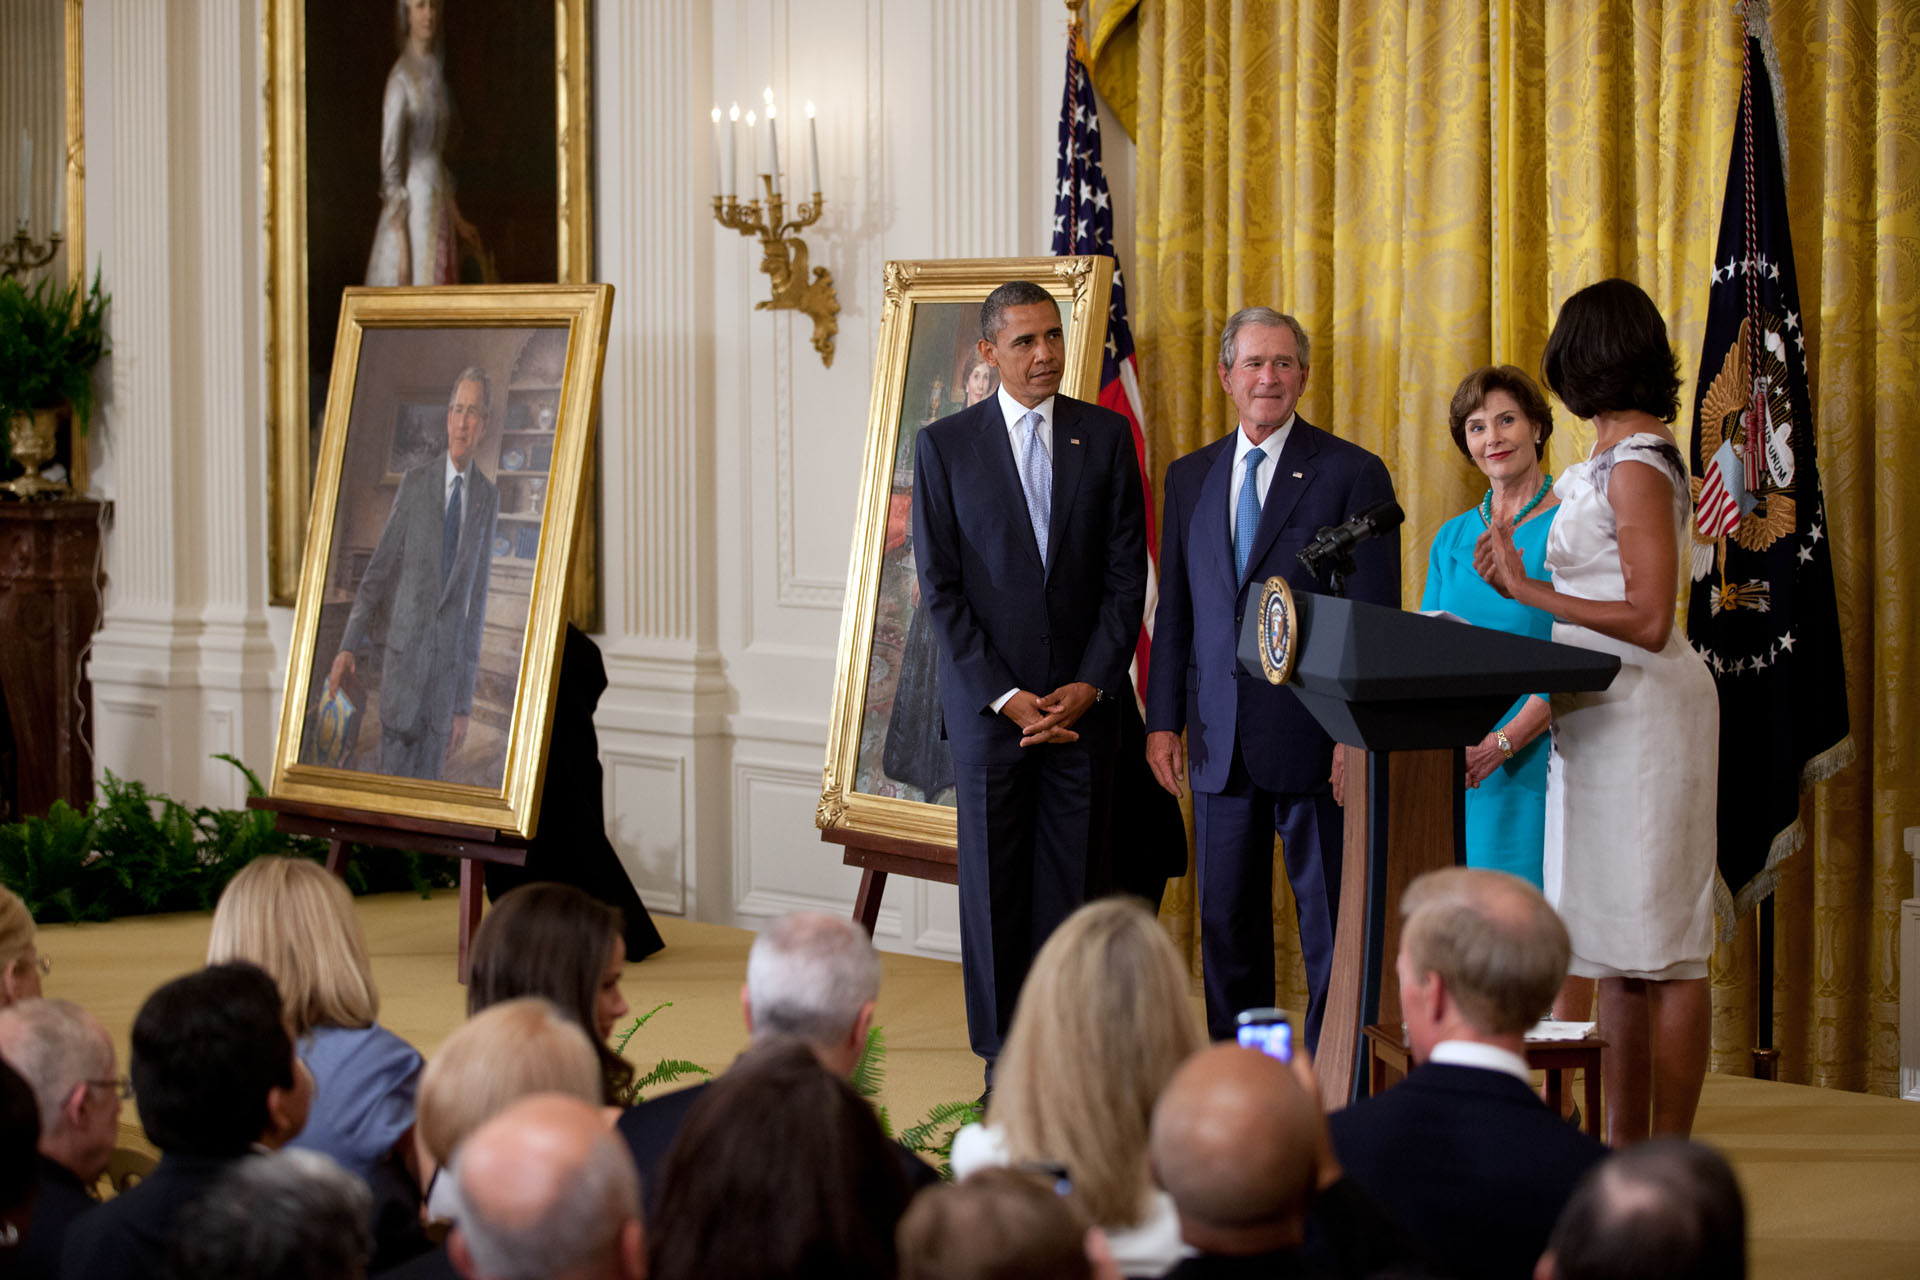 President Obama hosts a ceremony to unveil the official portraits of former President George W. Bush and former First Lady Laura Bush (May 31, 2012)